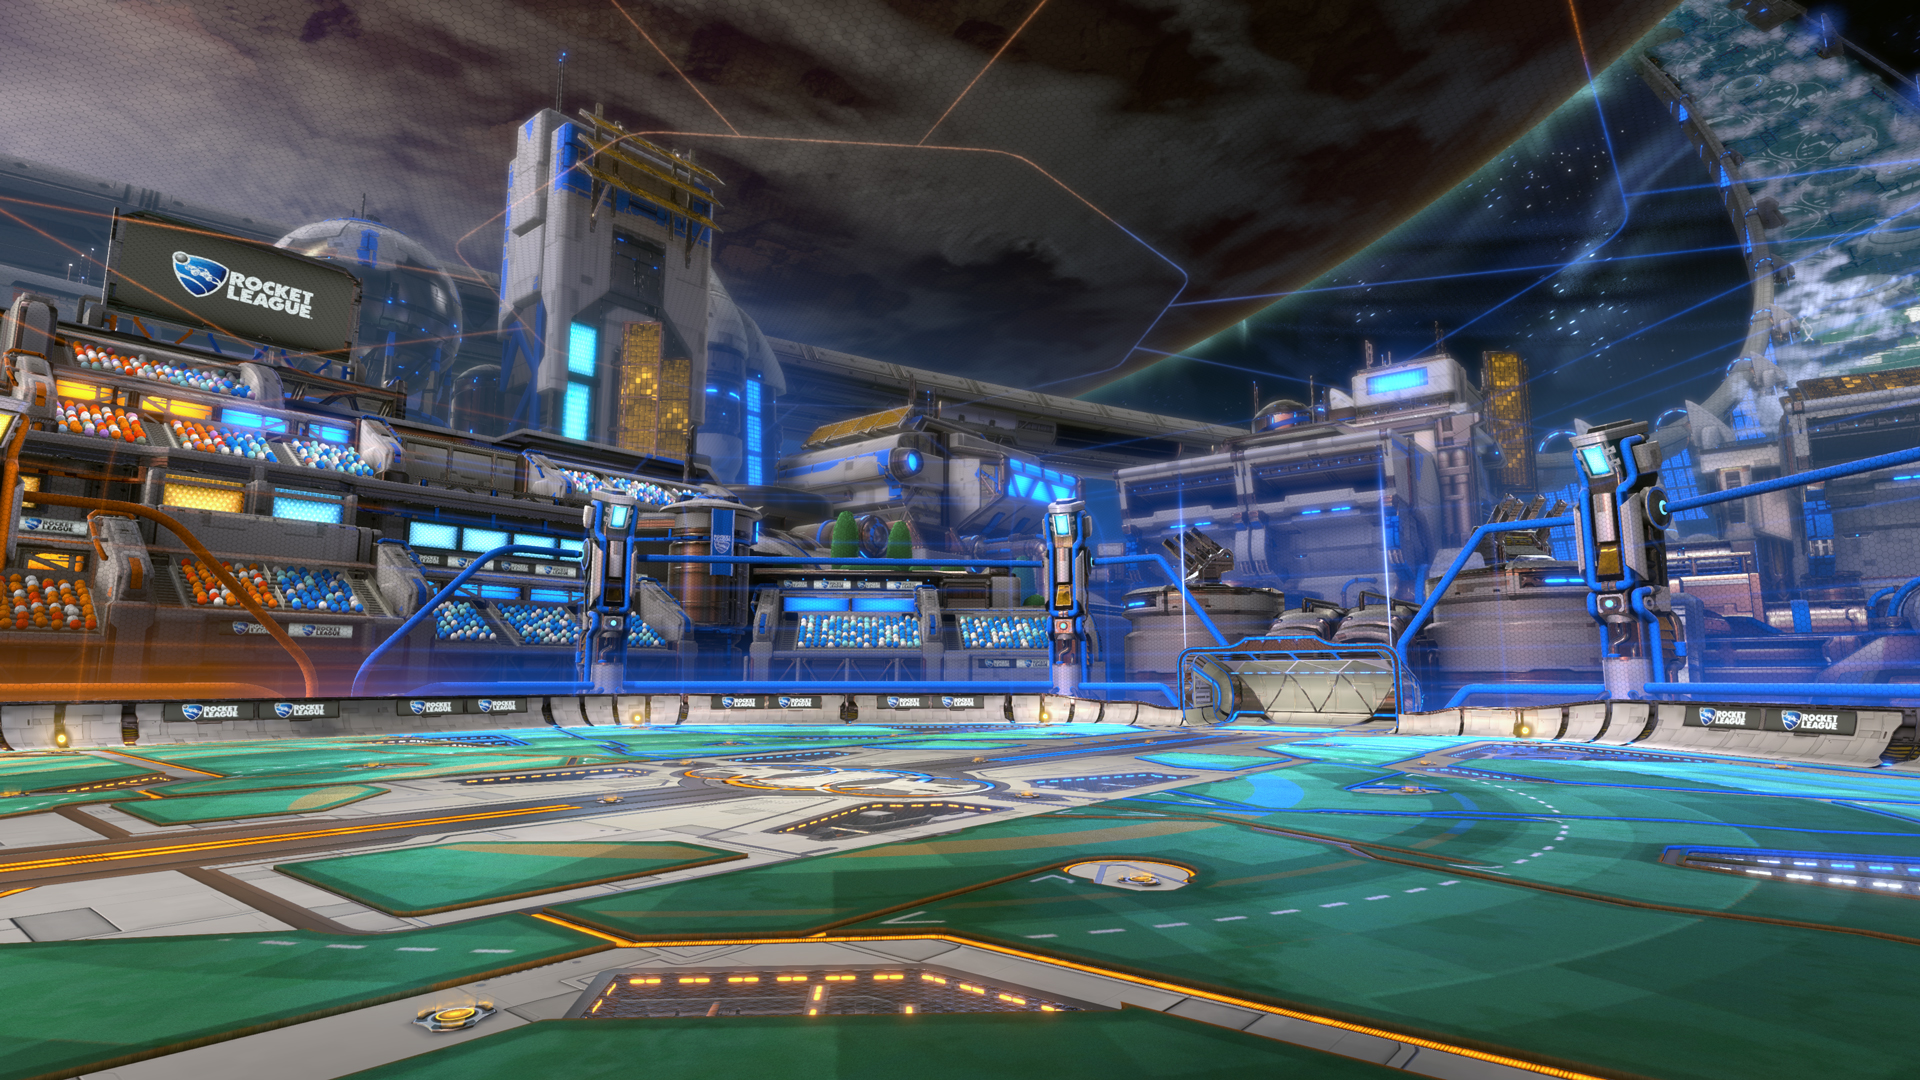 Rocket League: Starbase Arc arena shown at The Game Awards - VG247